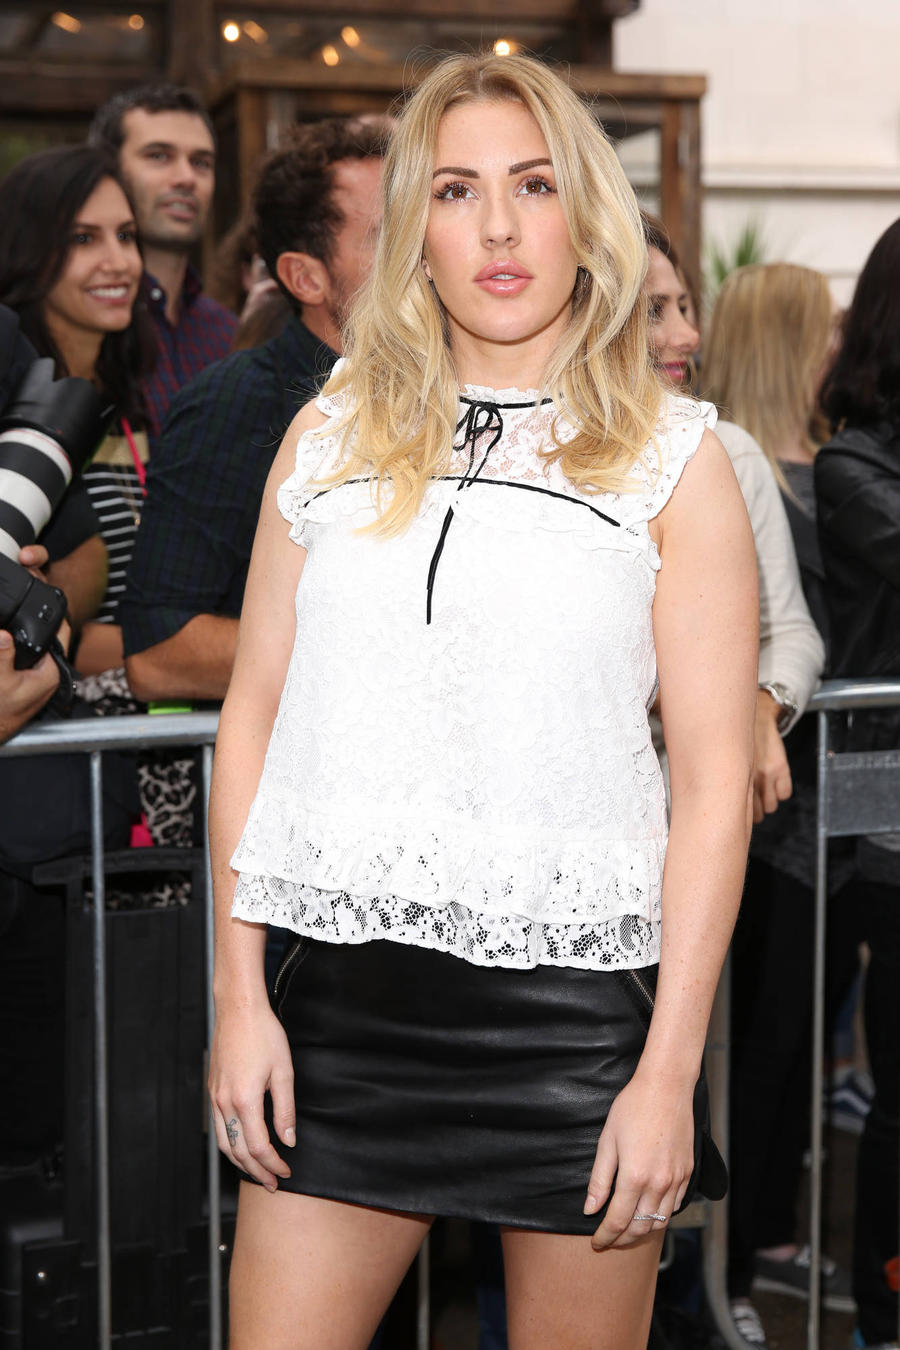 Ellie Goulding Felt Body 'Give Up' During Hectic Tour